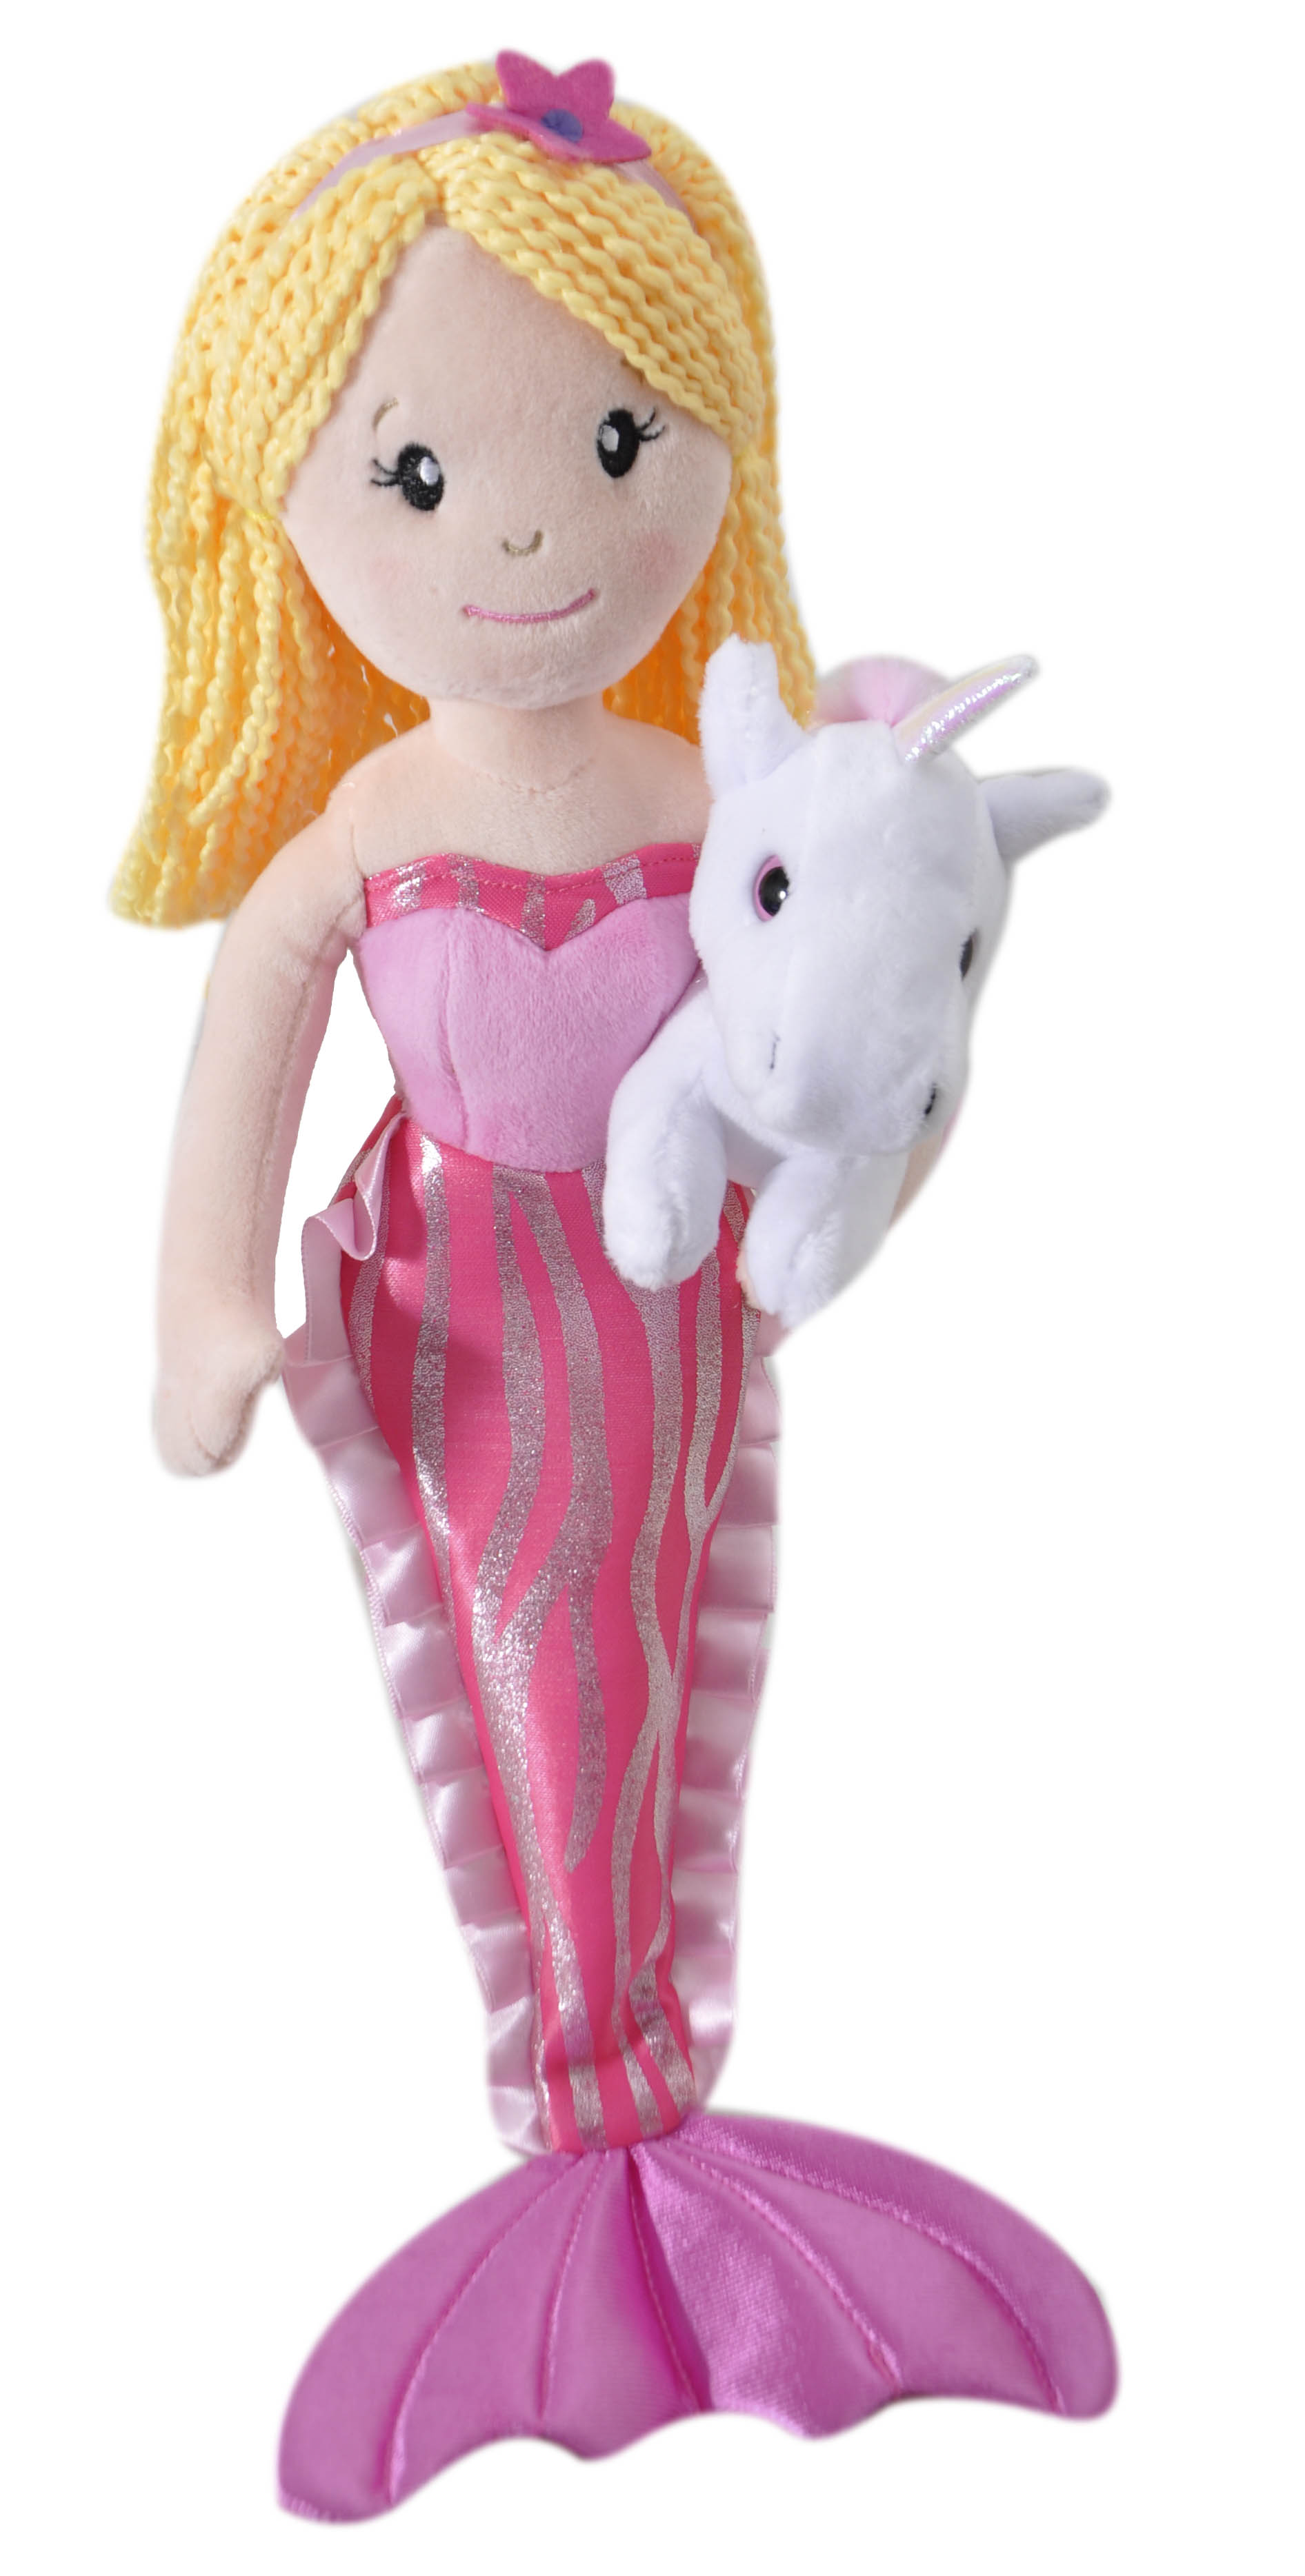 "The Petting Zoo: 17"" Mermaid with Unicorn Assortment"